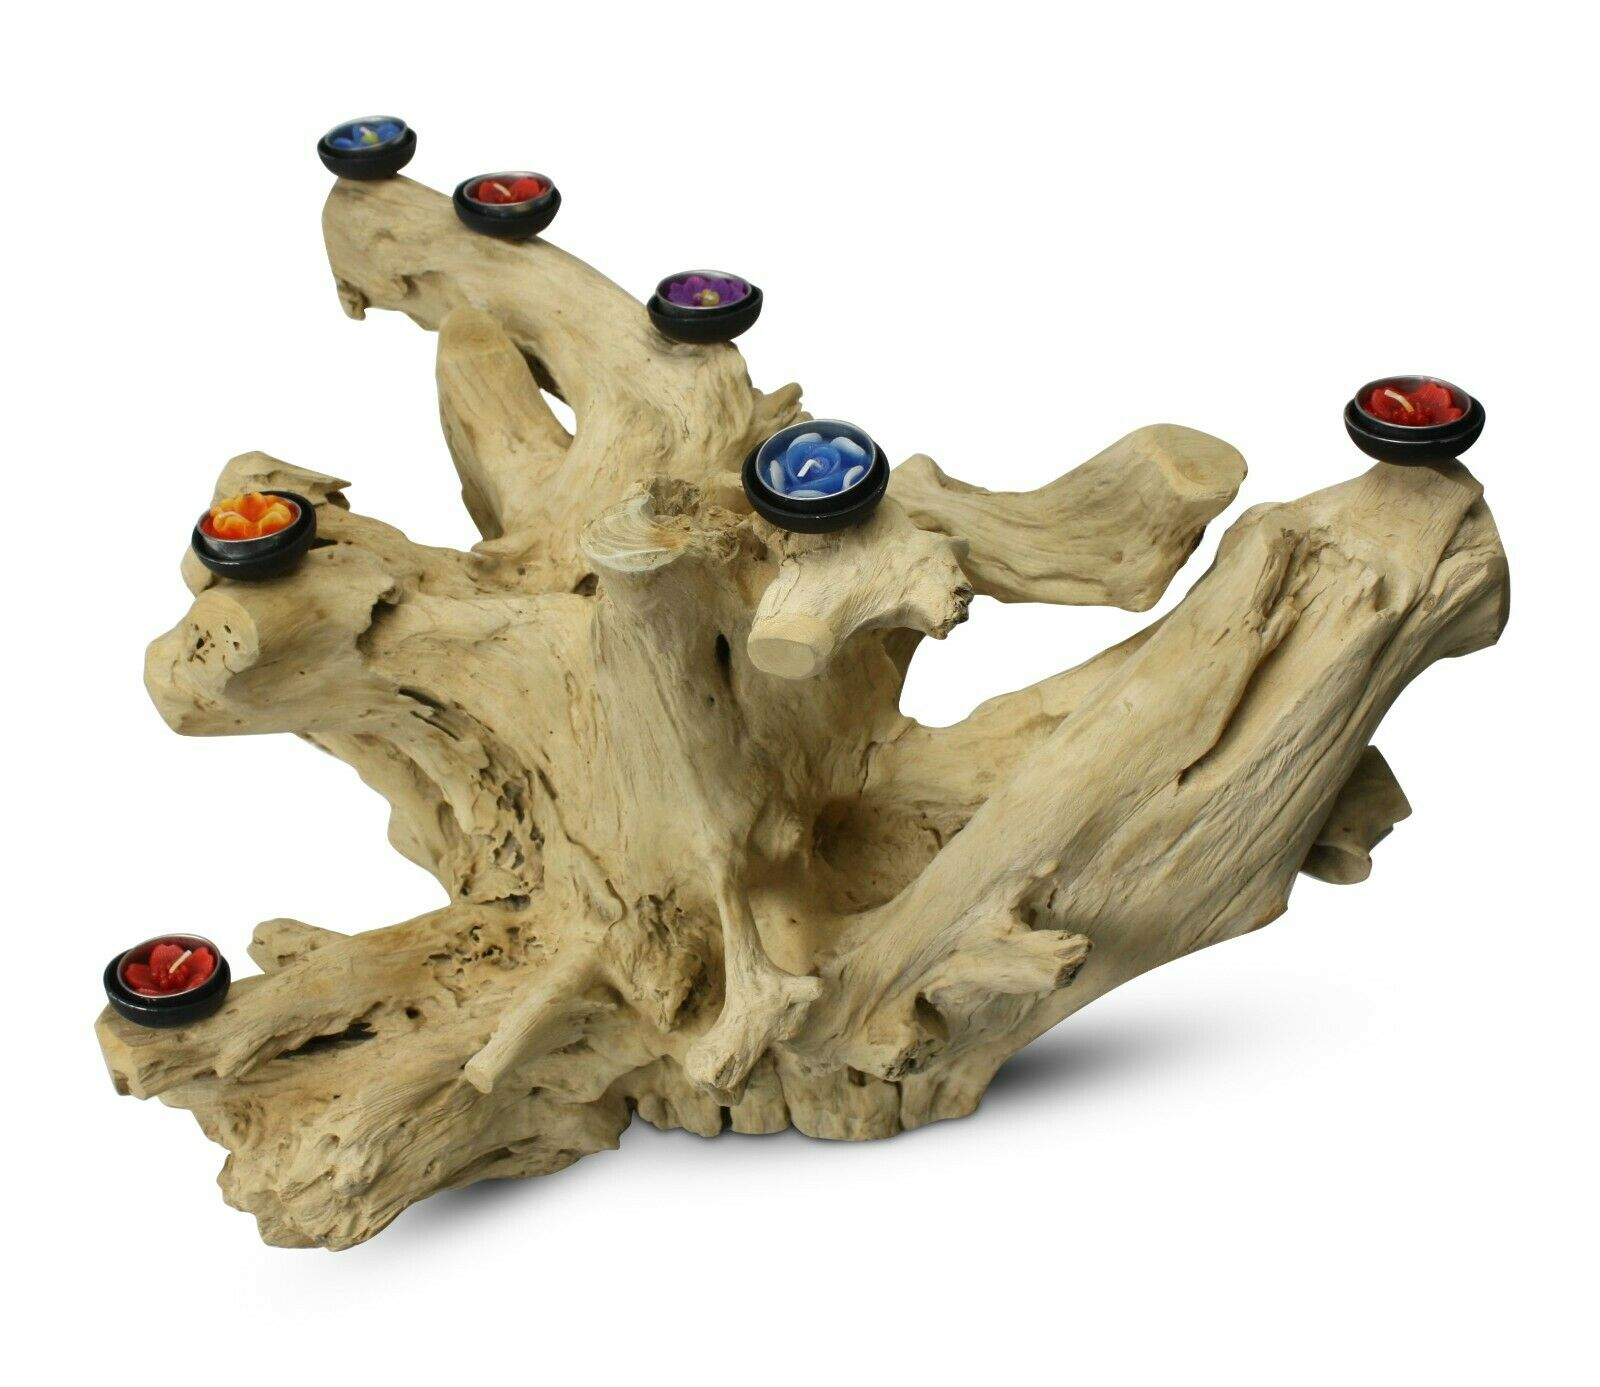 Natural Driftwood root candle holder, Very Very Very Large Approx 47cm high, BT41 Thailand 7d278f